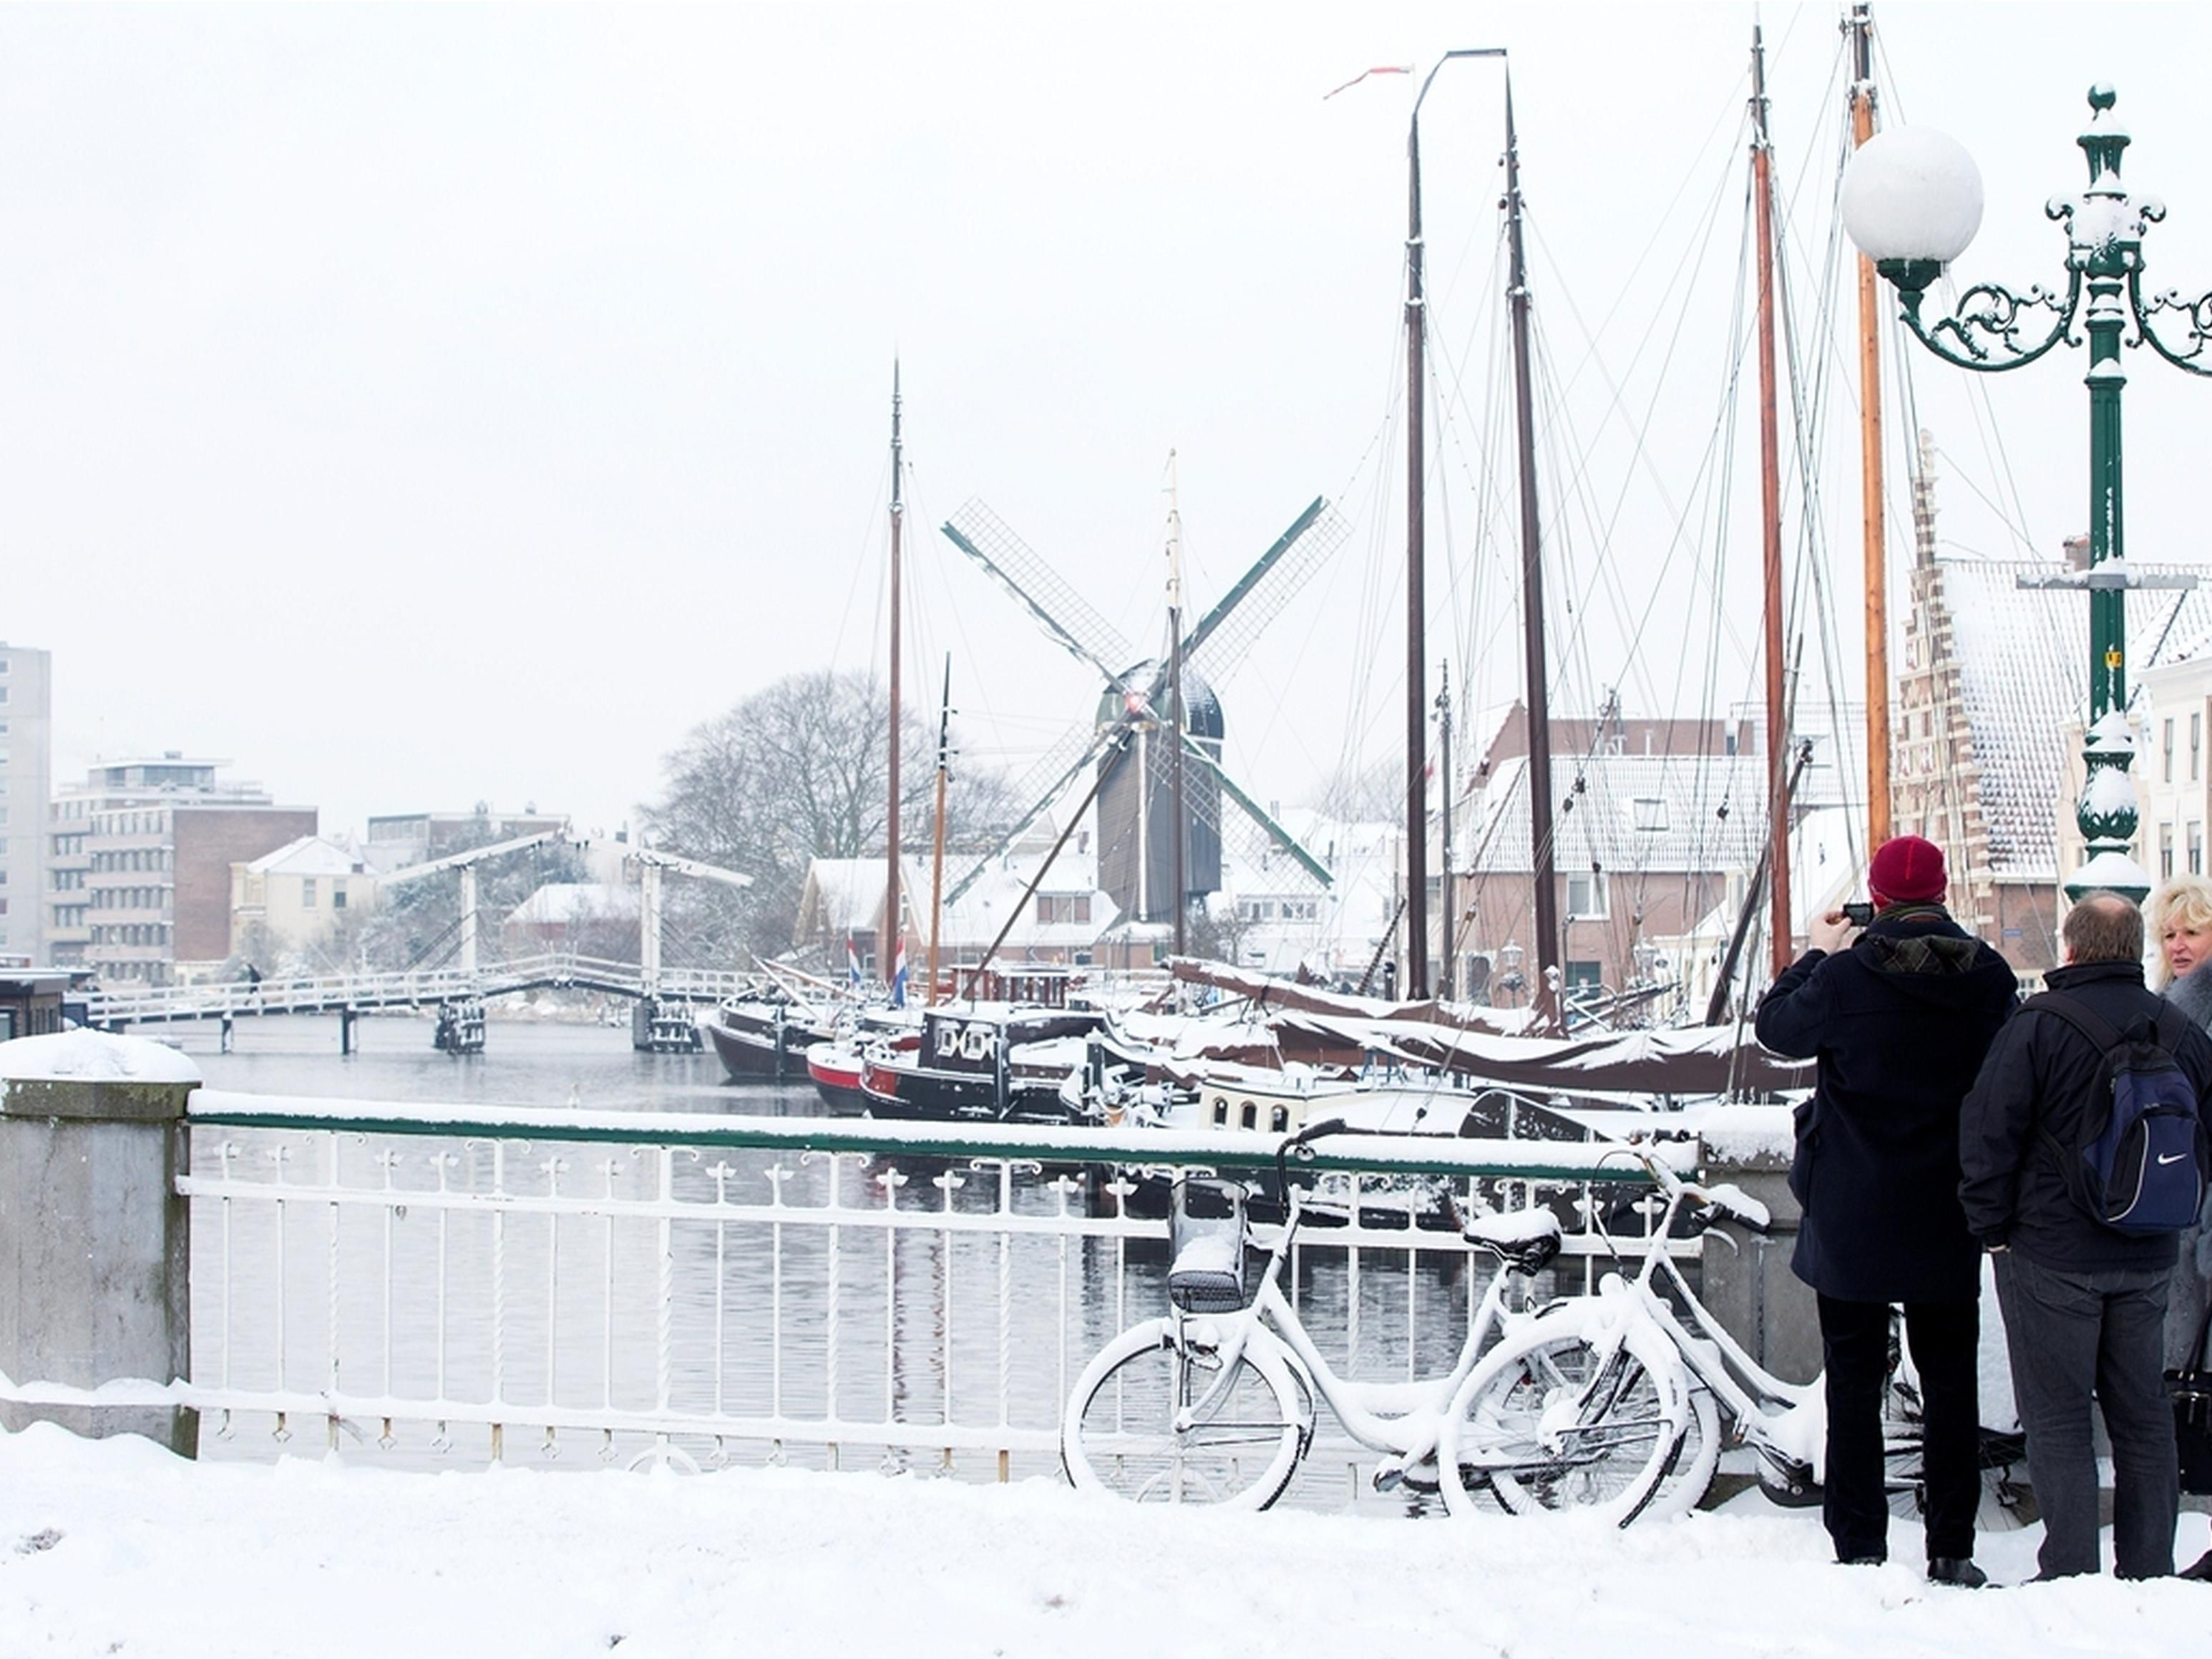 Winter in Leiden (Galgewater)